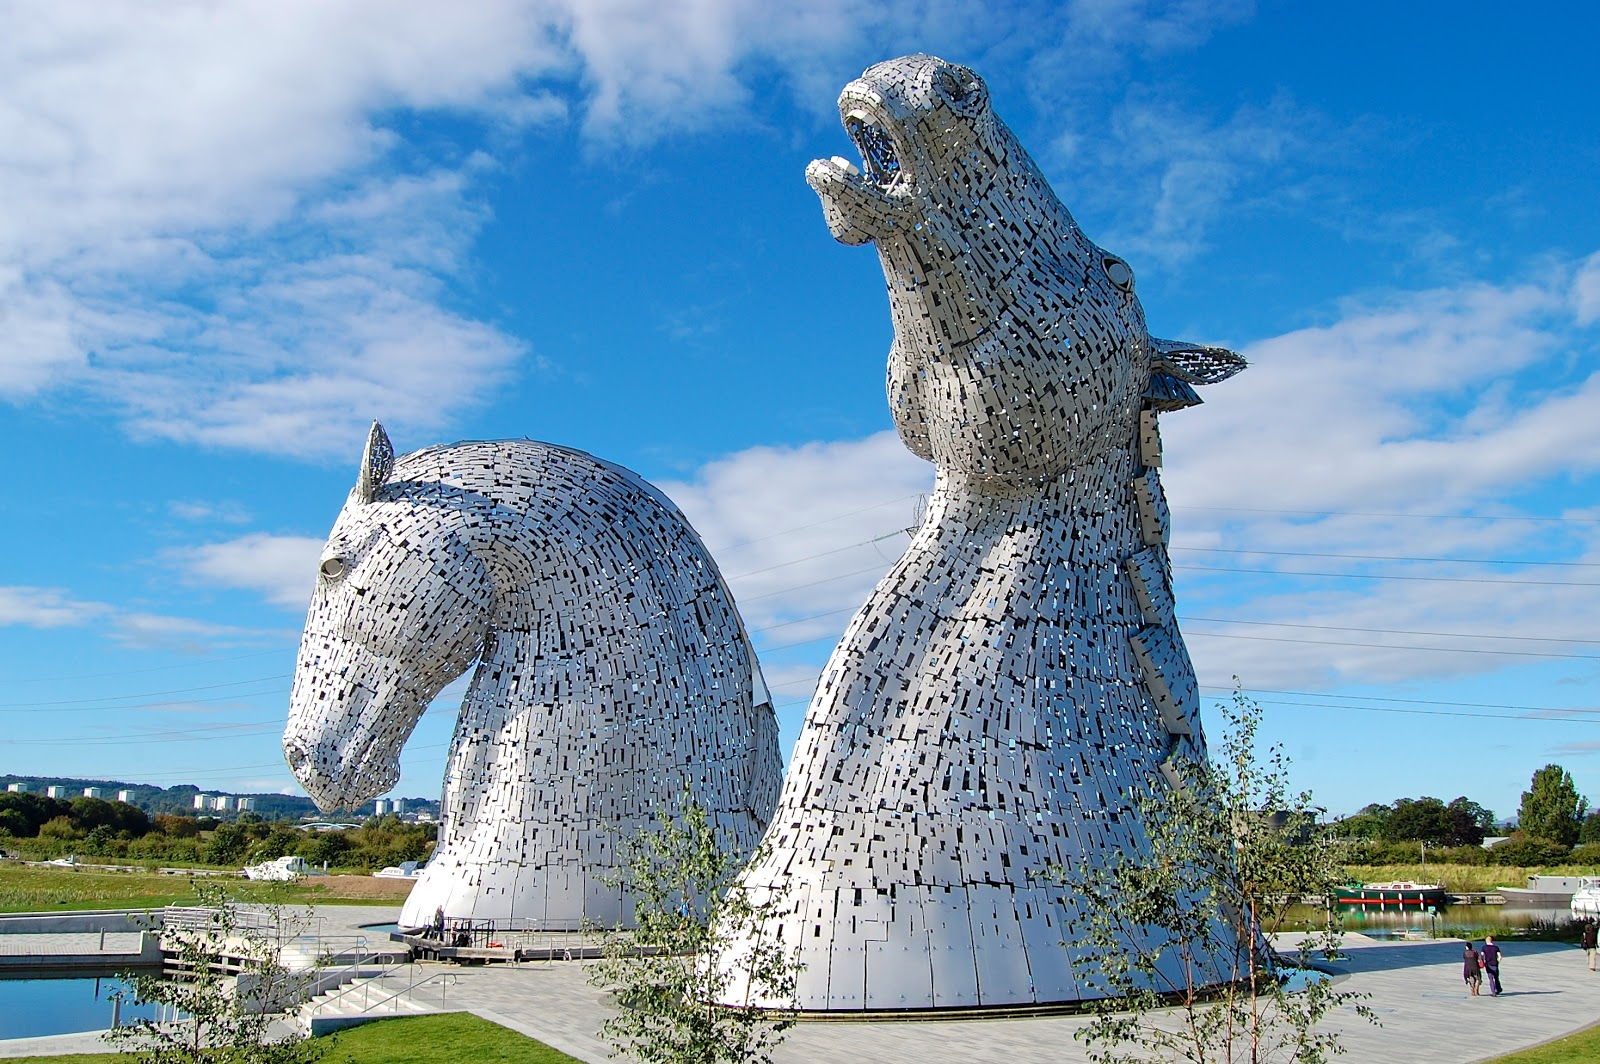 The Kelpies statues in Falkirk, Scotland